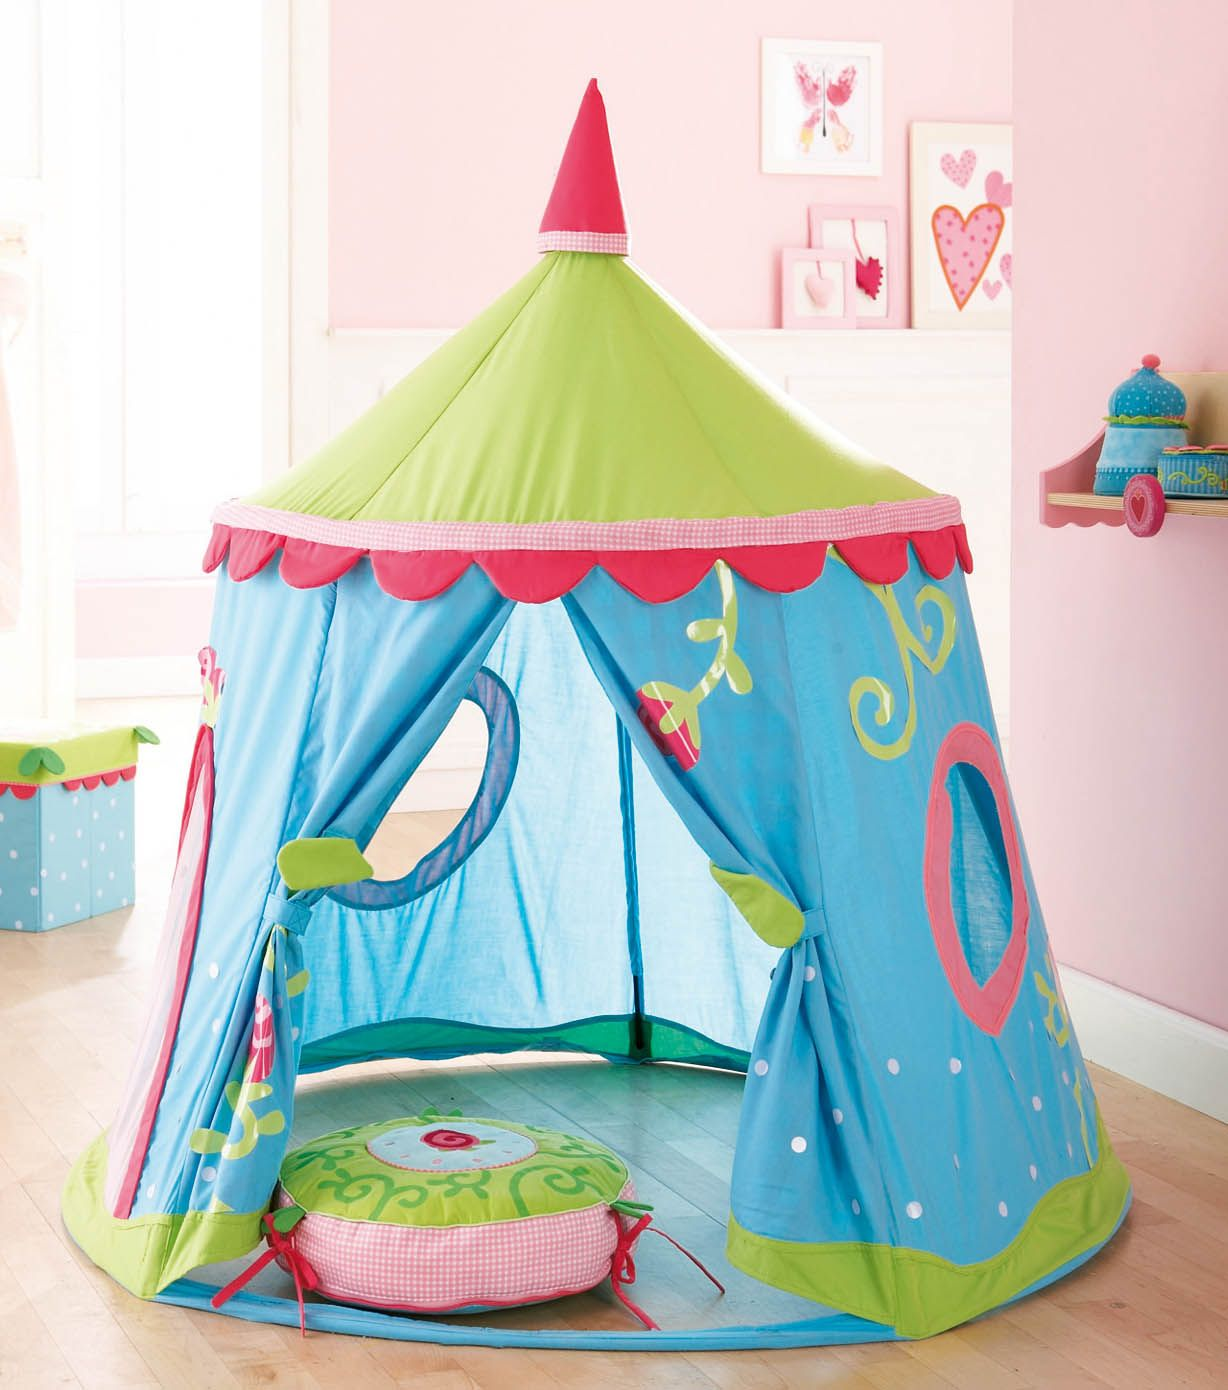 Haba - Play Tent Caro-Lini by Haba  sc 1 st  Pinterest & Haba - Play Tent Caro-Lini by Haba | DIY/ craft ideas | Pinterest ...